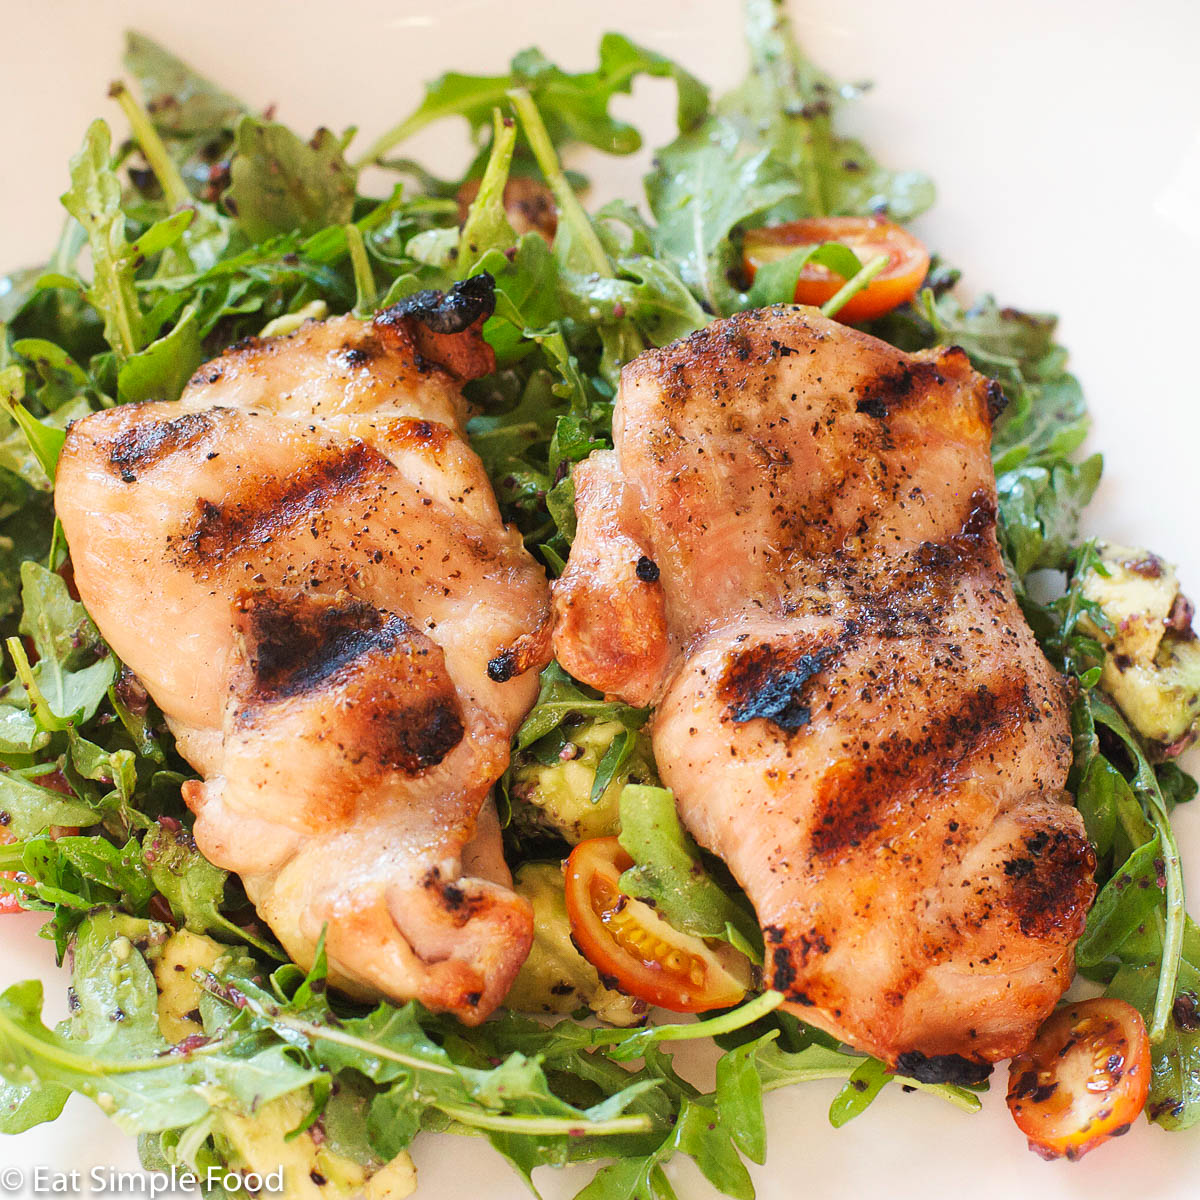 Grilled Chicken Salad With Basil Vinaigrette Recipe Eat Simple Food